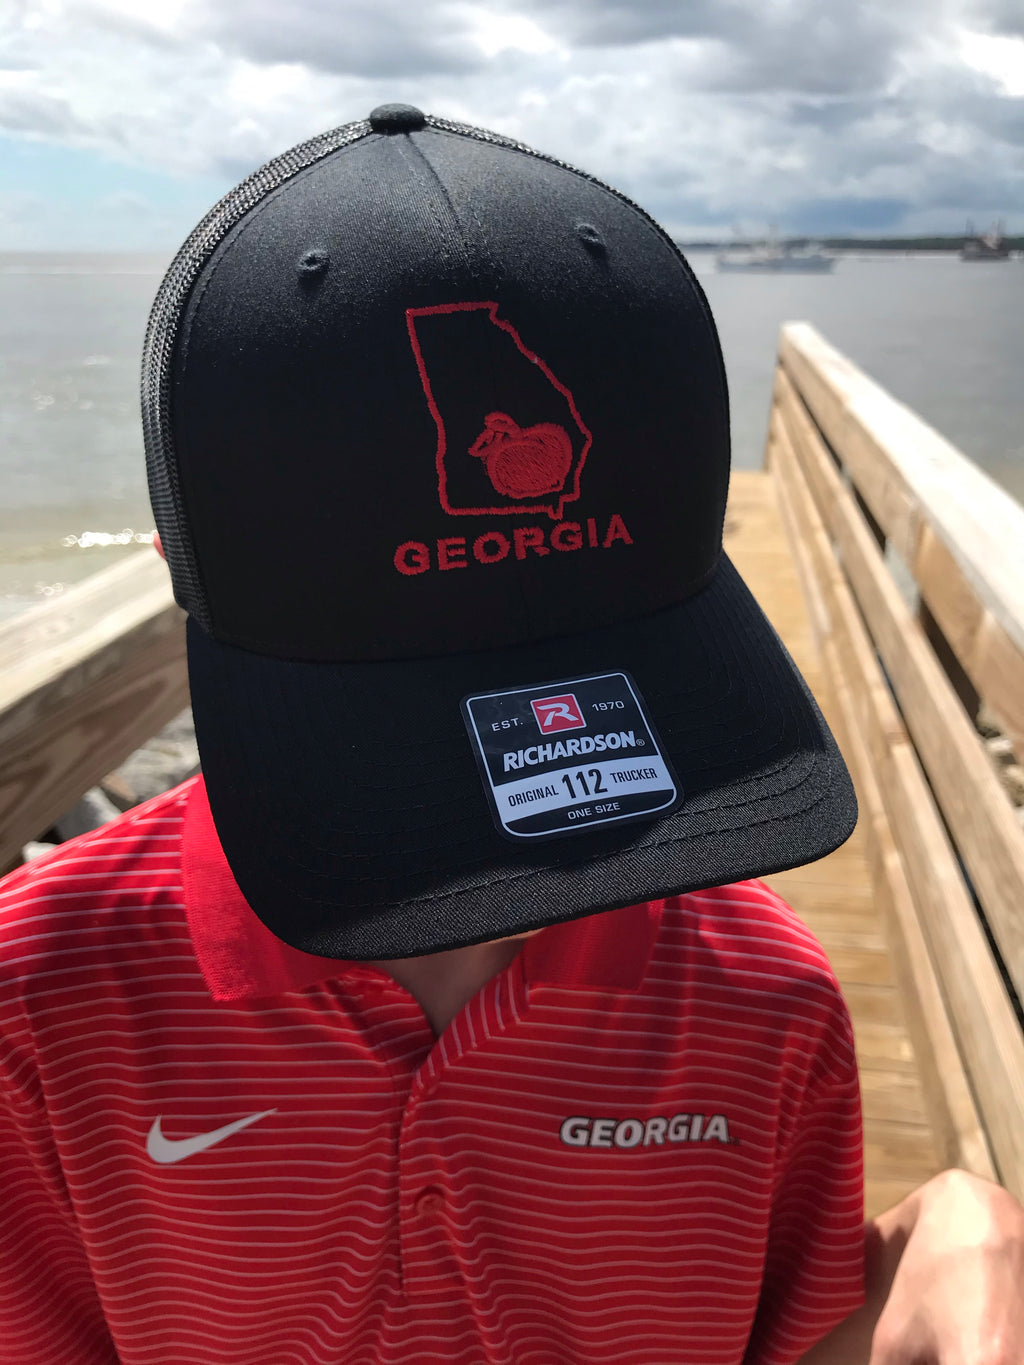 Georgia Cap by Richardson